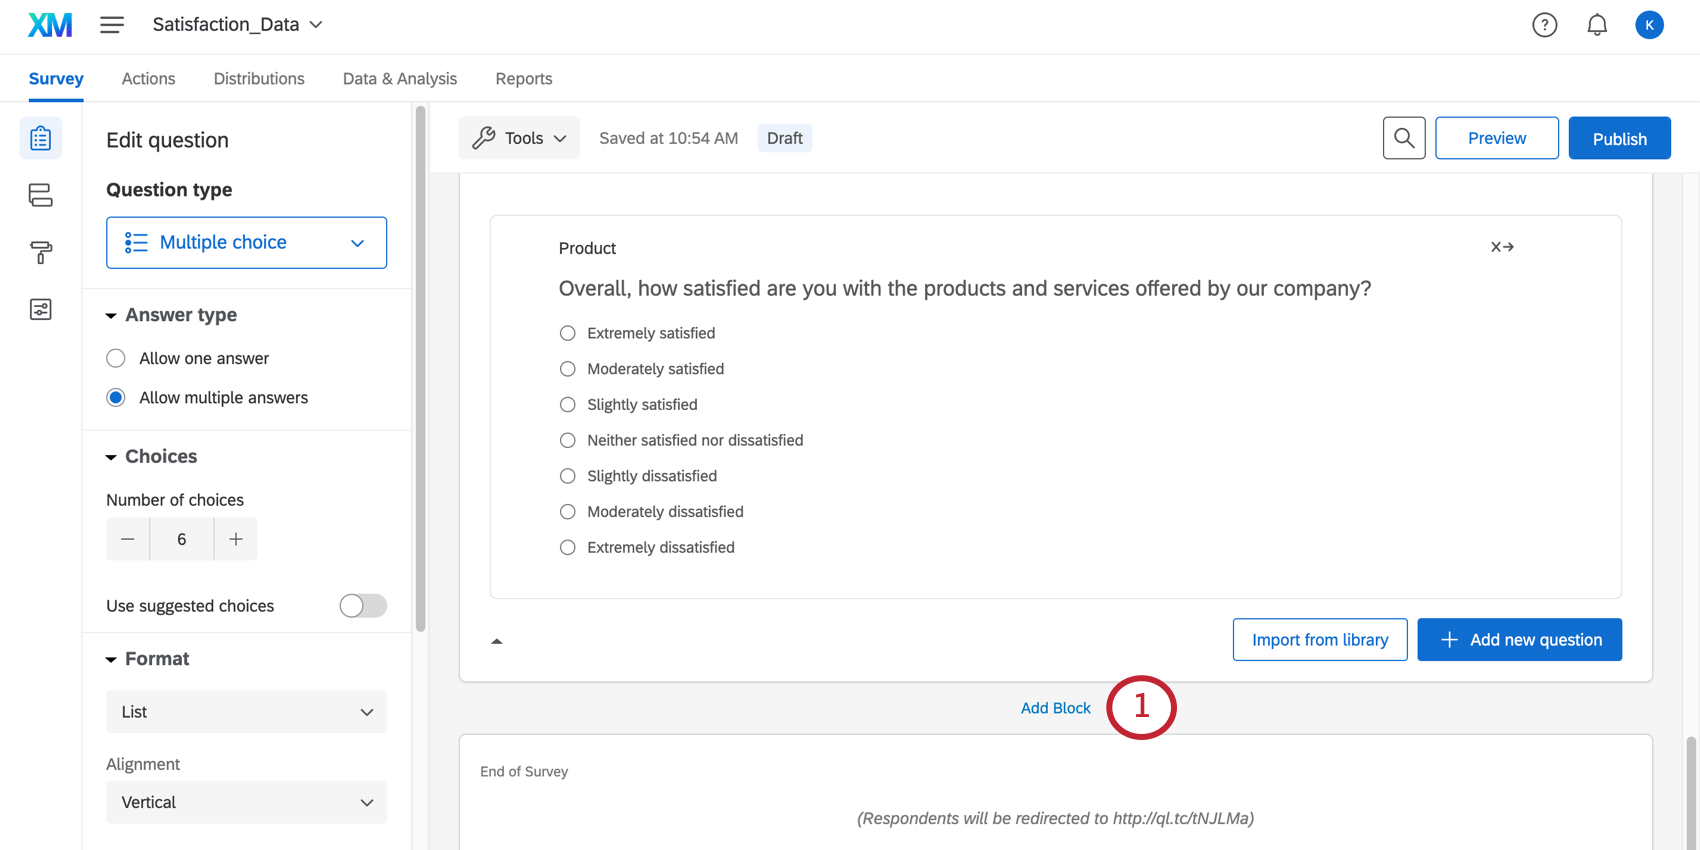 Bottom of a survey, before blue end of survey, blue add block link